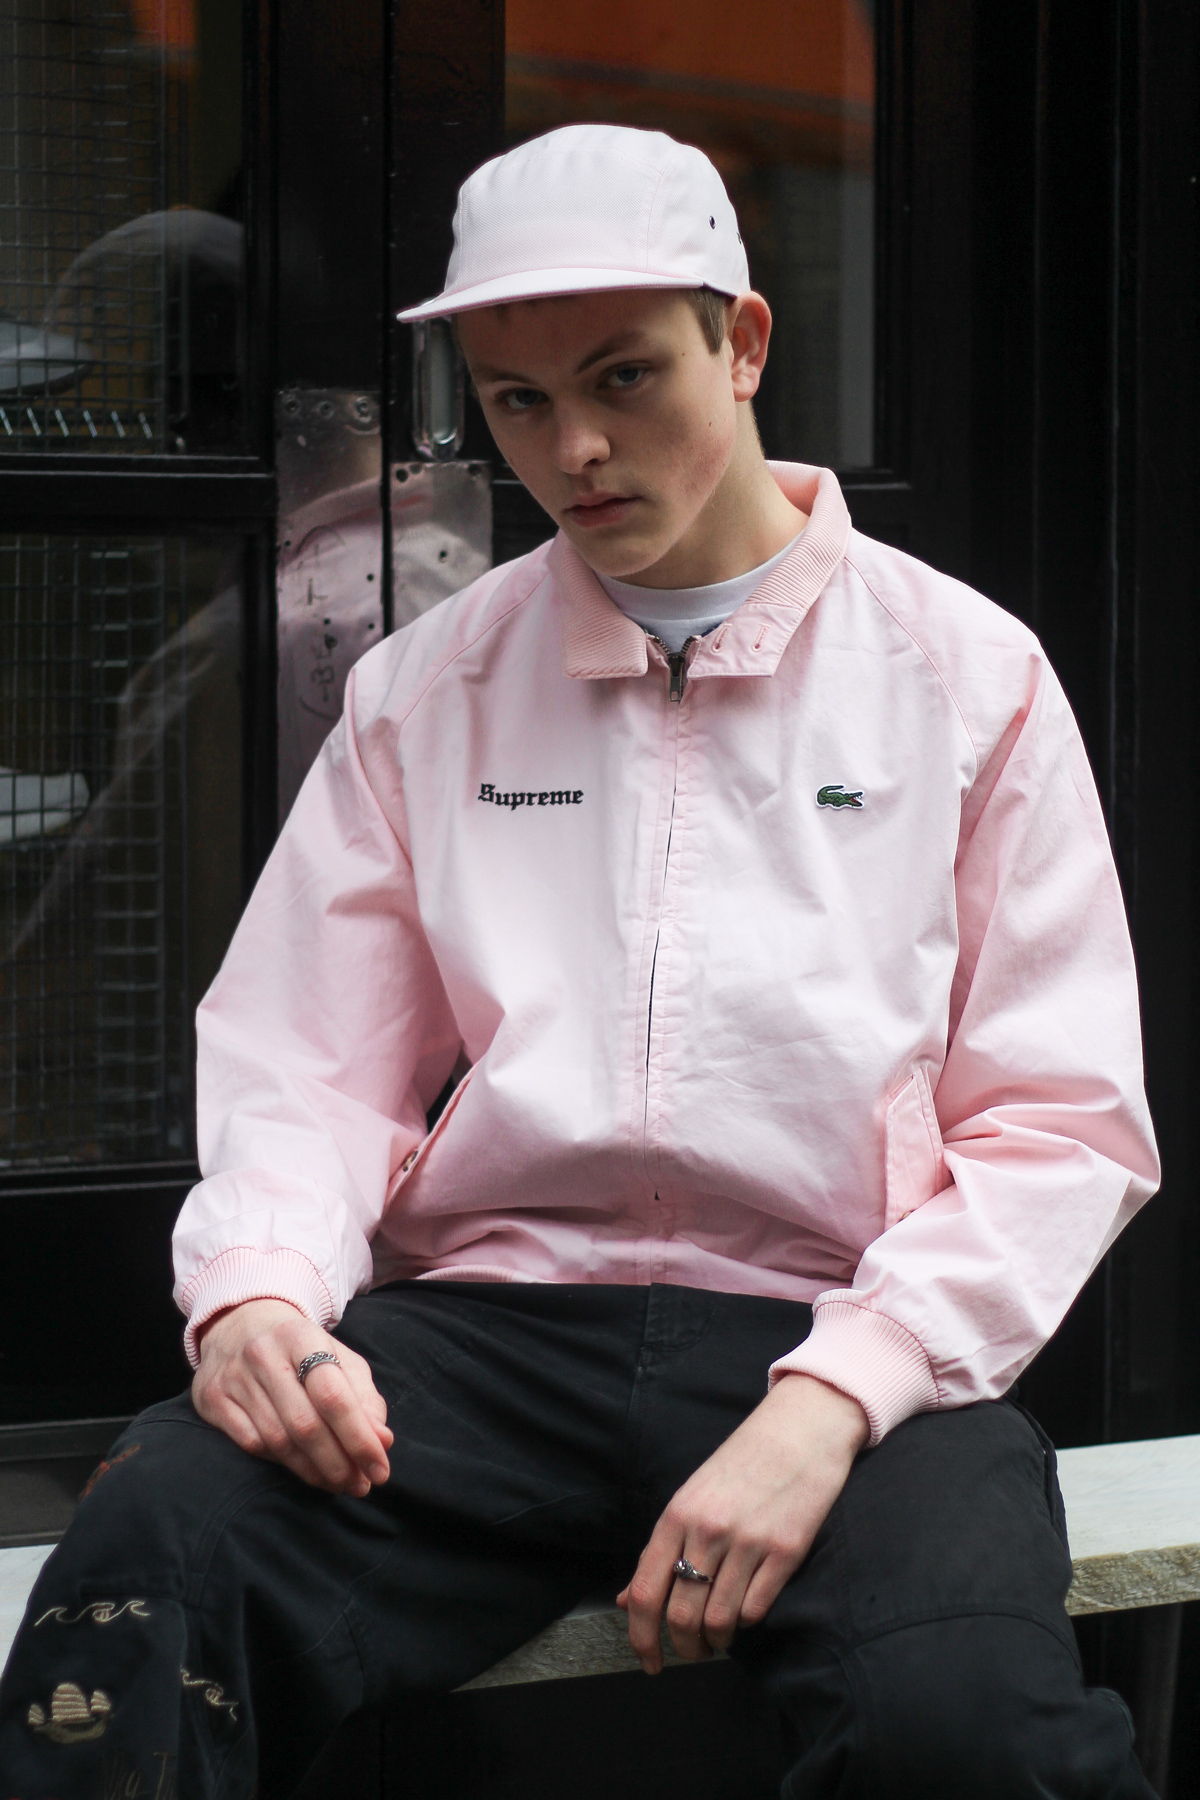 Lacoste x Supreme Pink Cap Pink Jacket